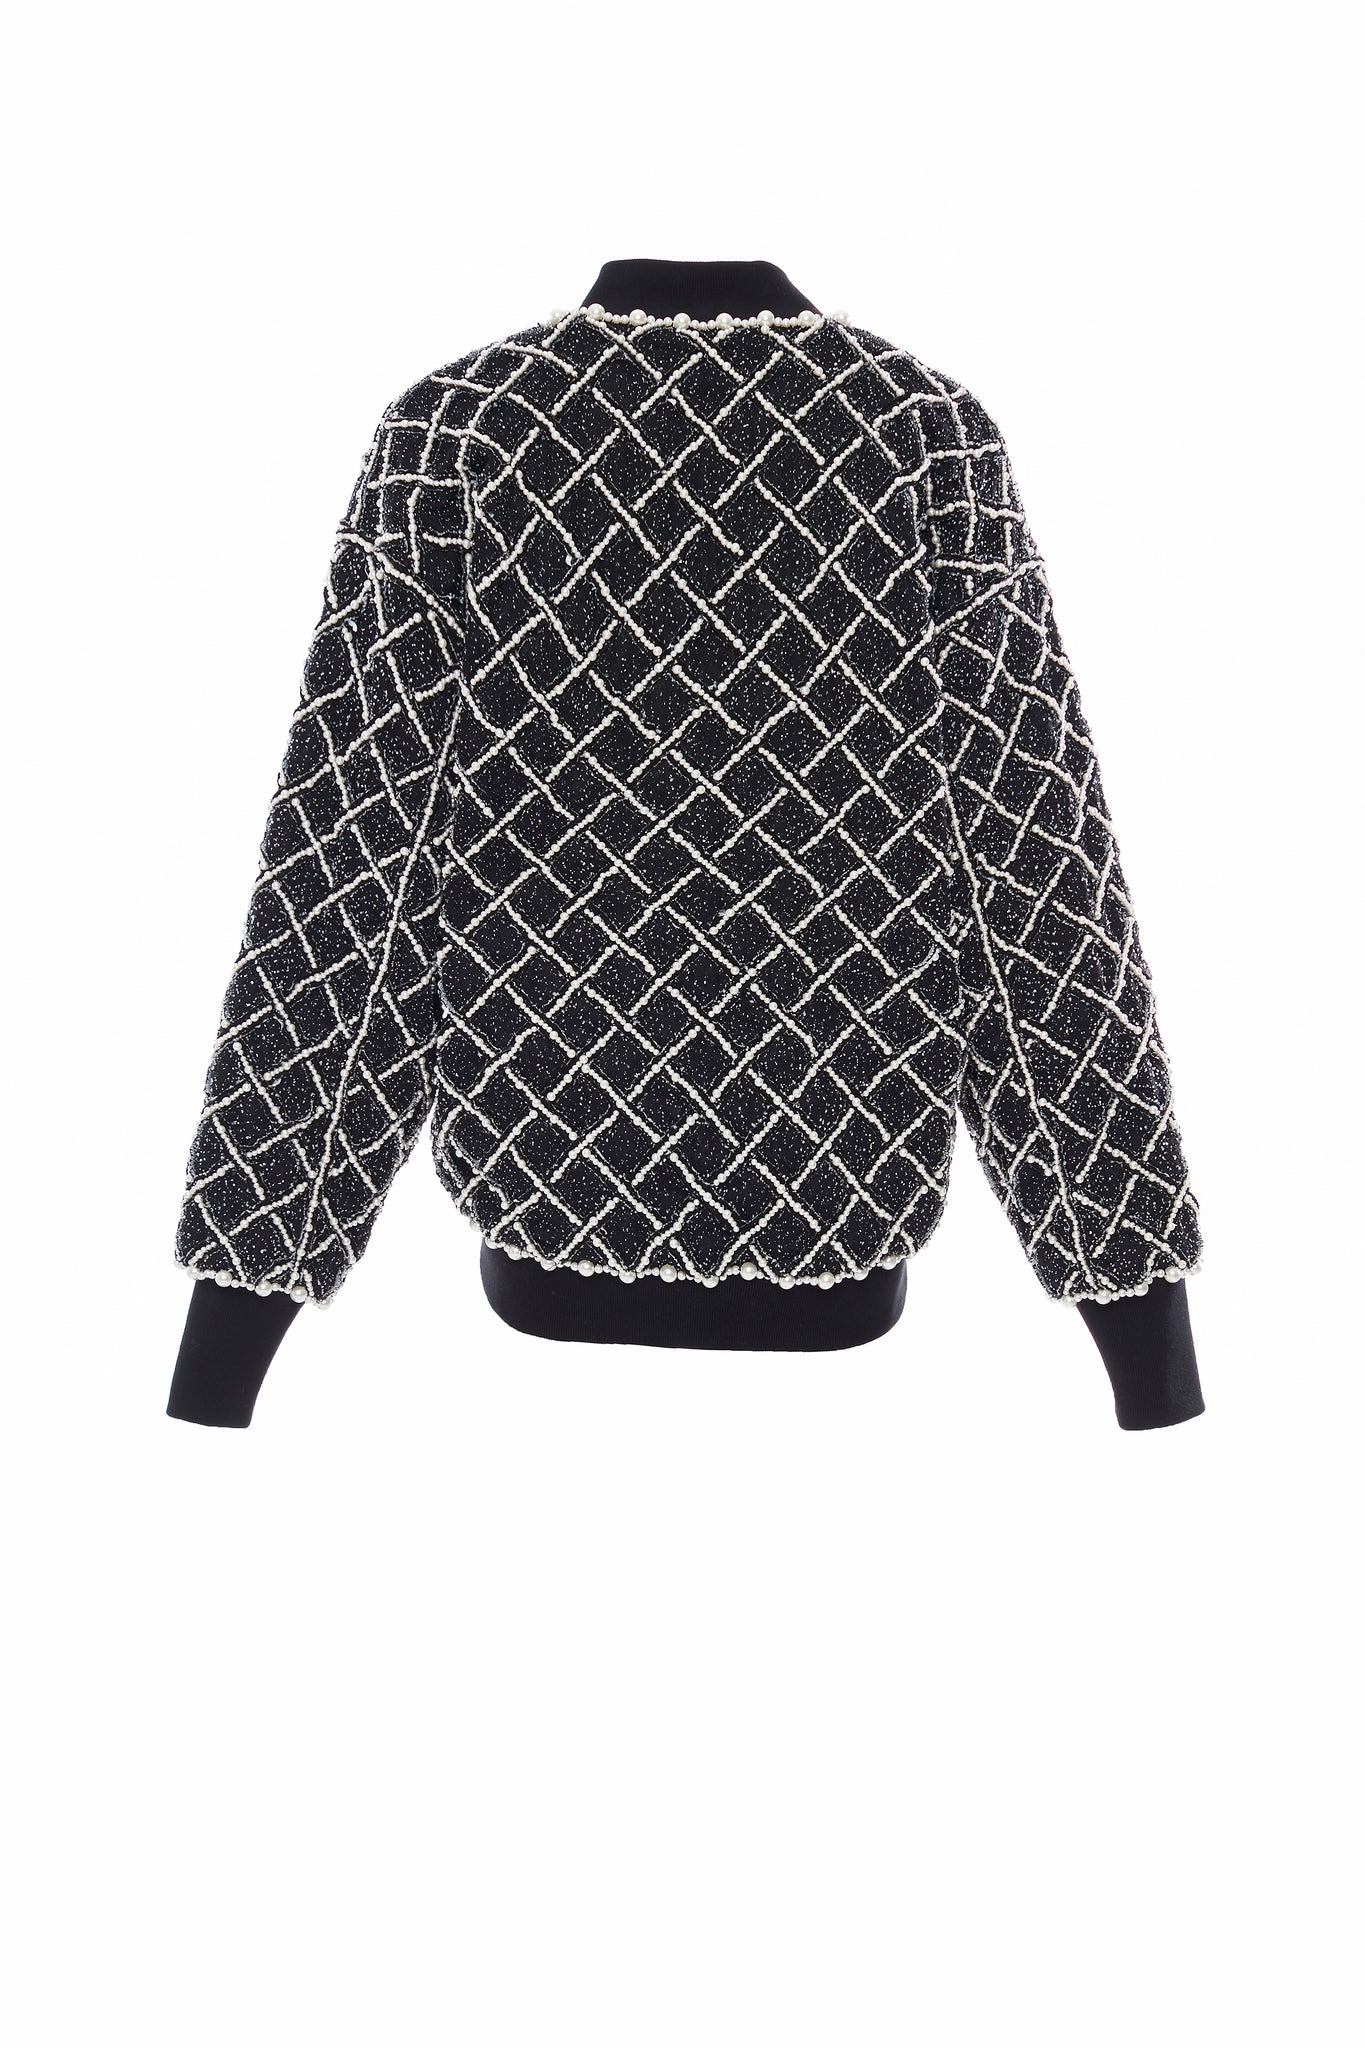 Black Gridded Pearl Beadings Denim Bomber